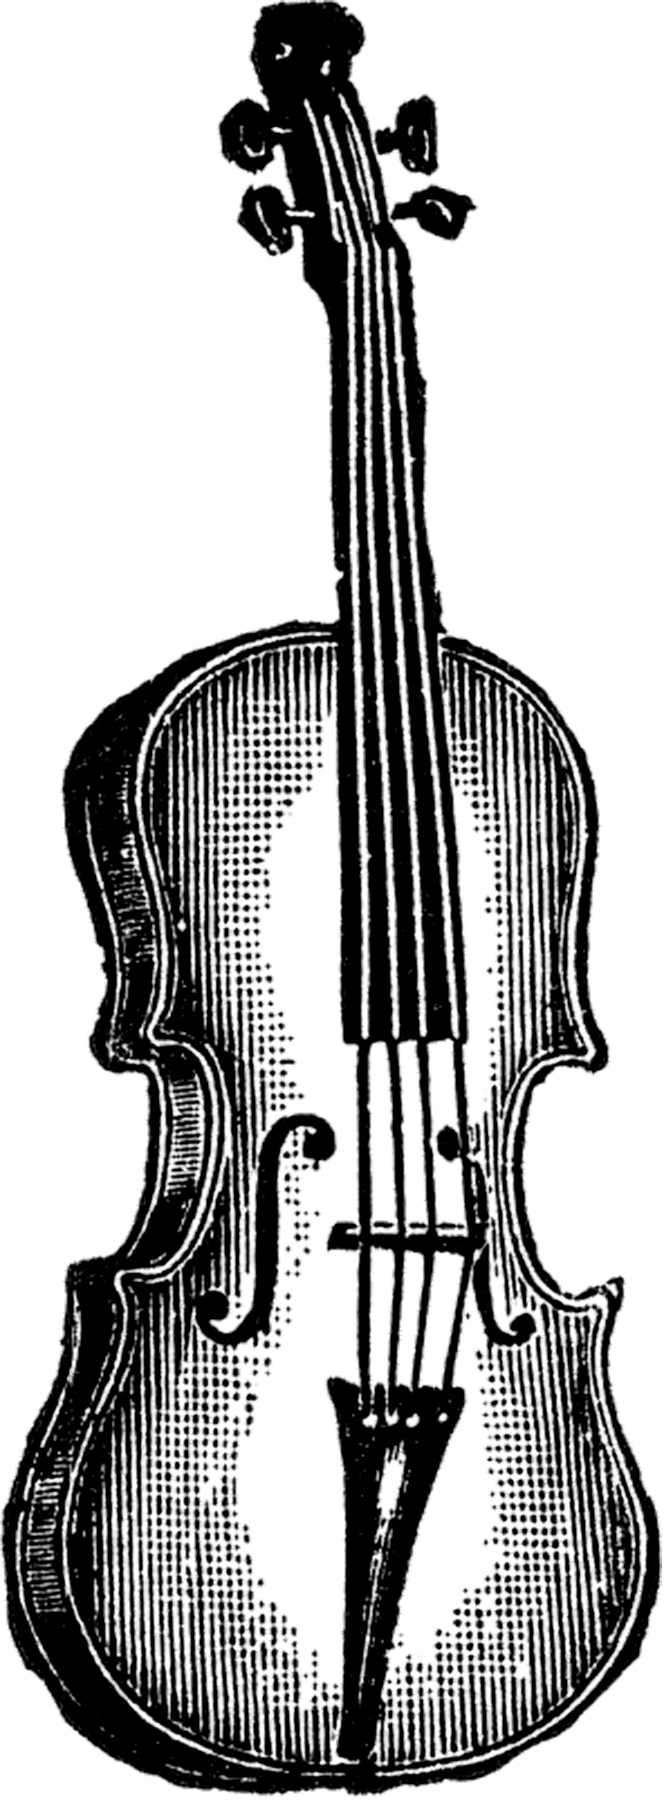 public domain violin image  the graphics fairy clip art public domain spring clip art public domain for commercial use